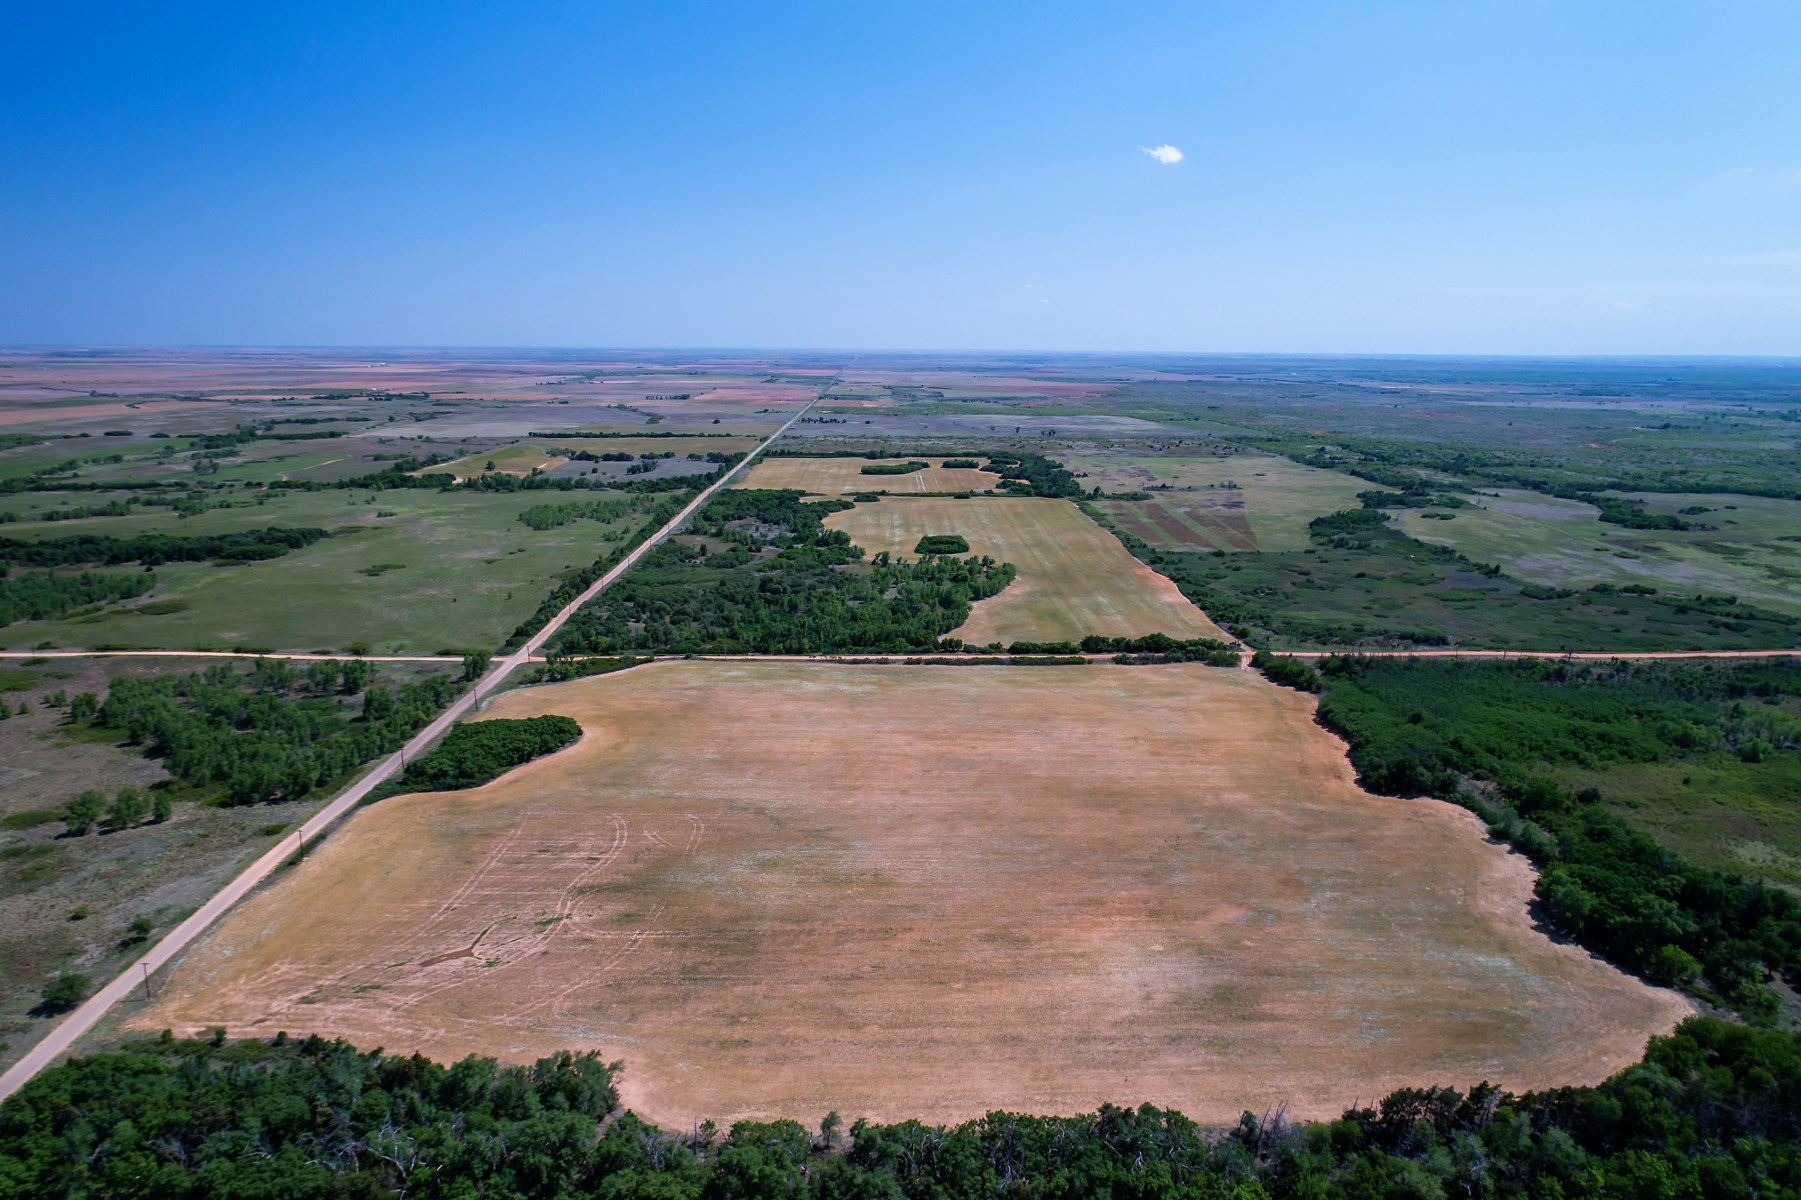 40 Acres of Farmland, Hunting/Recreational Land for Sale.